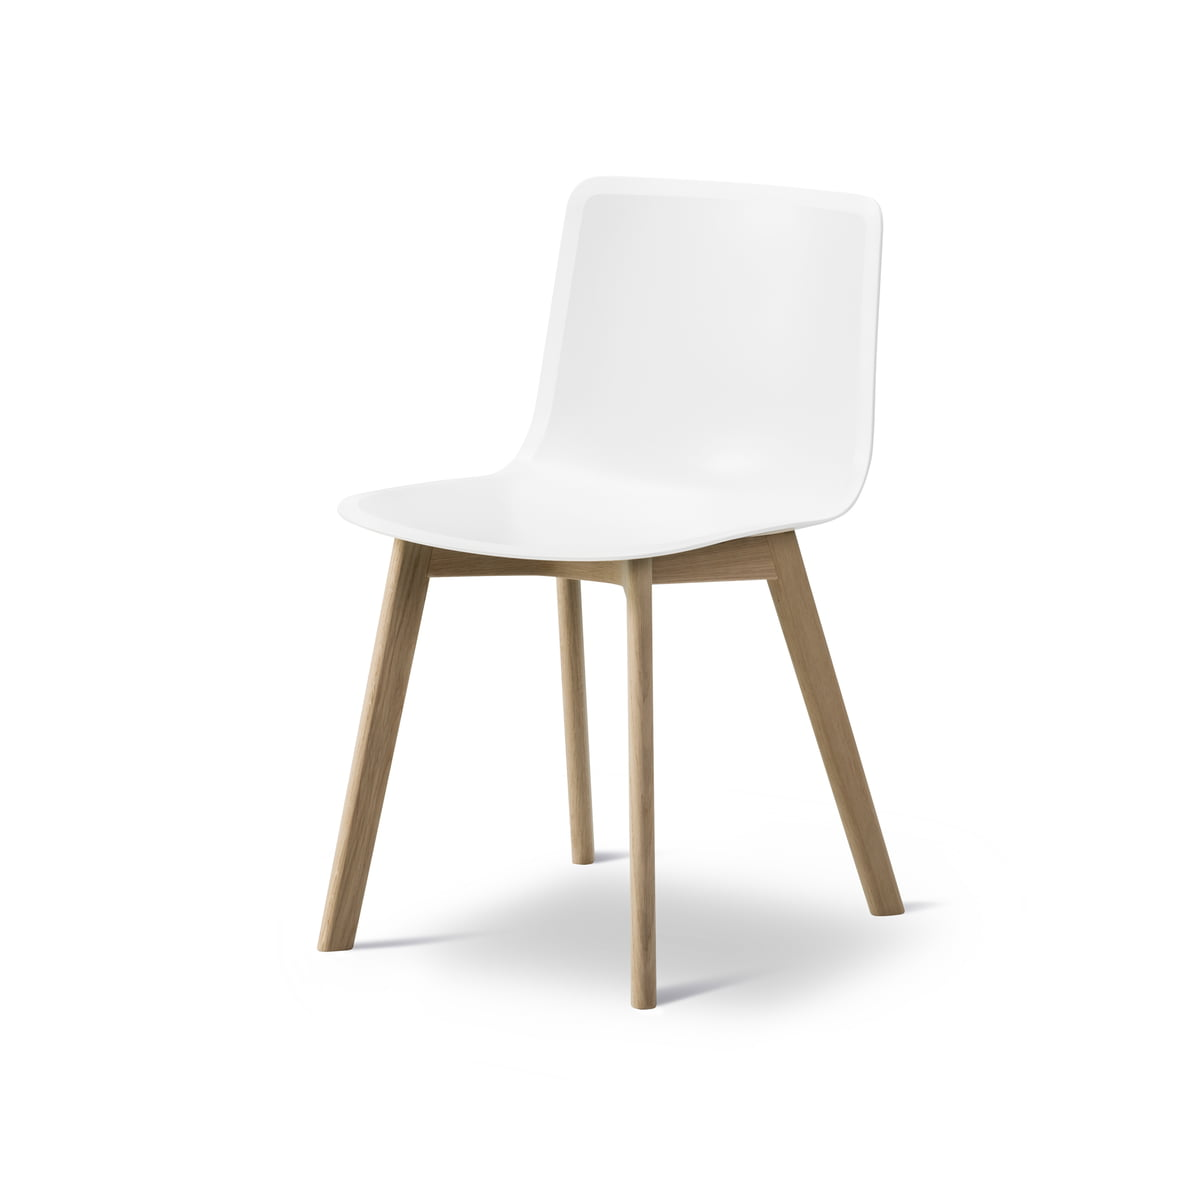 Wood Base Chairs ~ Pato wood base chair by fredericia connox